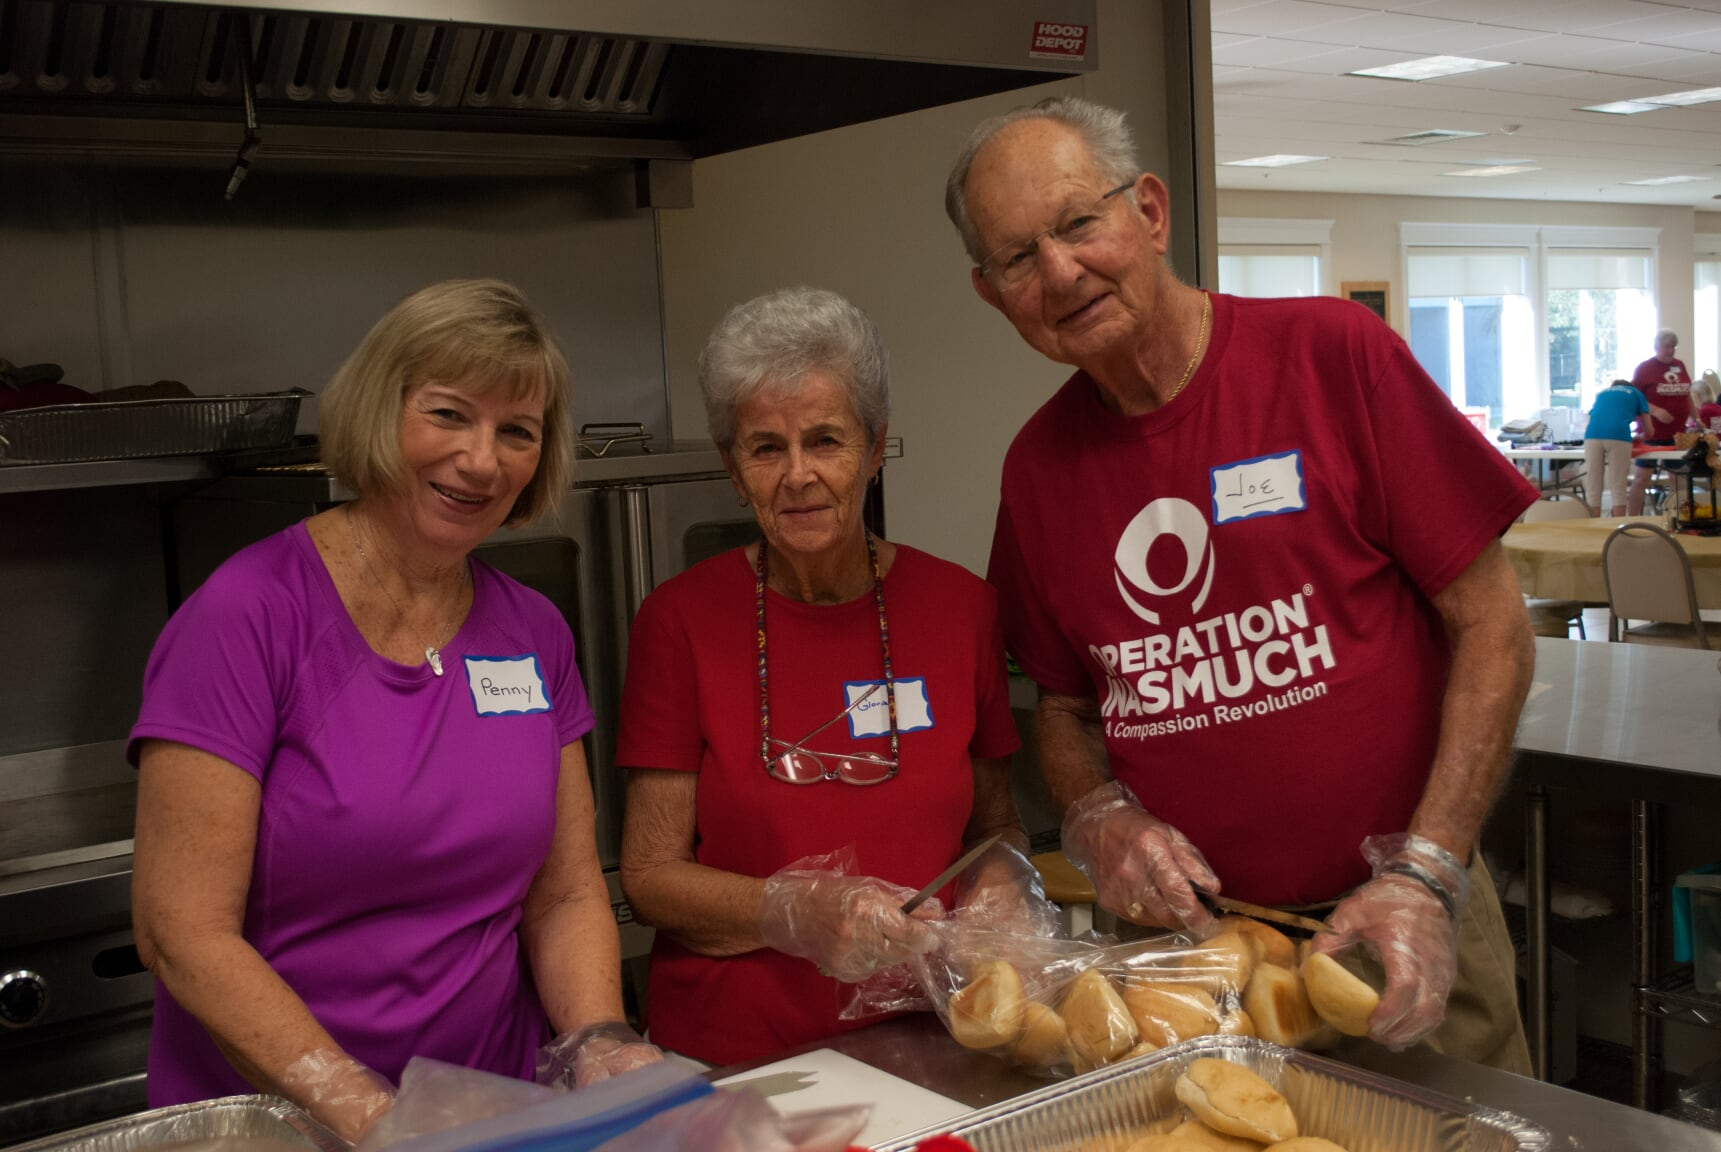 local-missions-with-north-stuart-baptist-church-martin-county-9.jpg